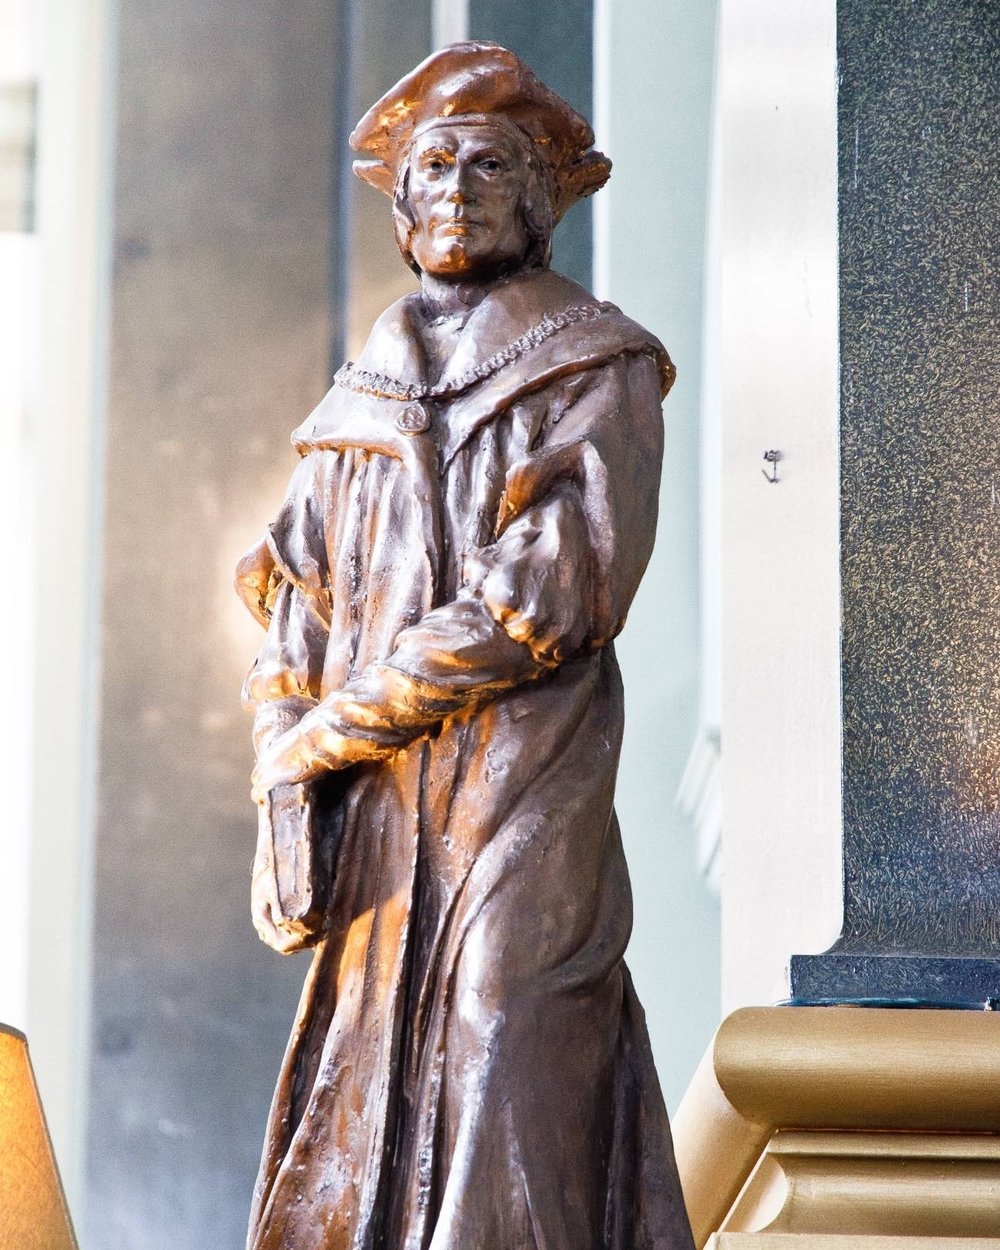 St. Thomas More - This maquette, entered by Enzo Plazzotta in the competition to choose a sculptor for the statue that now stands on Chelsea Embankment, near Chelsea Old Church, was presented to the church by the artist.